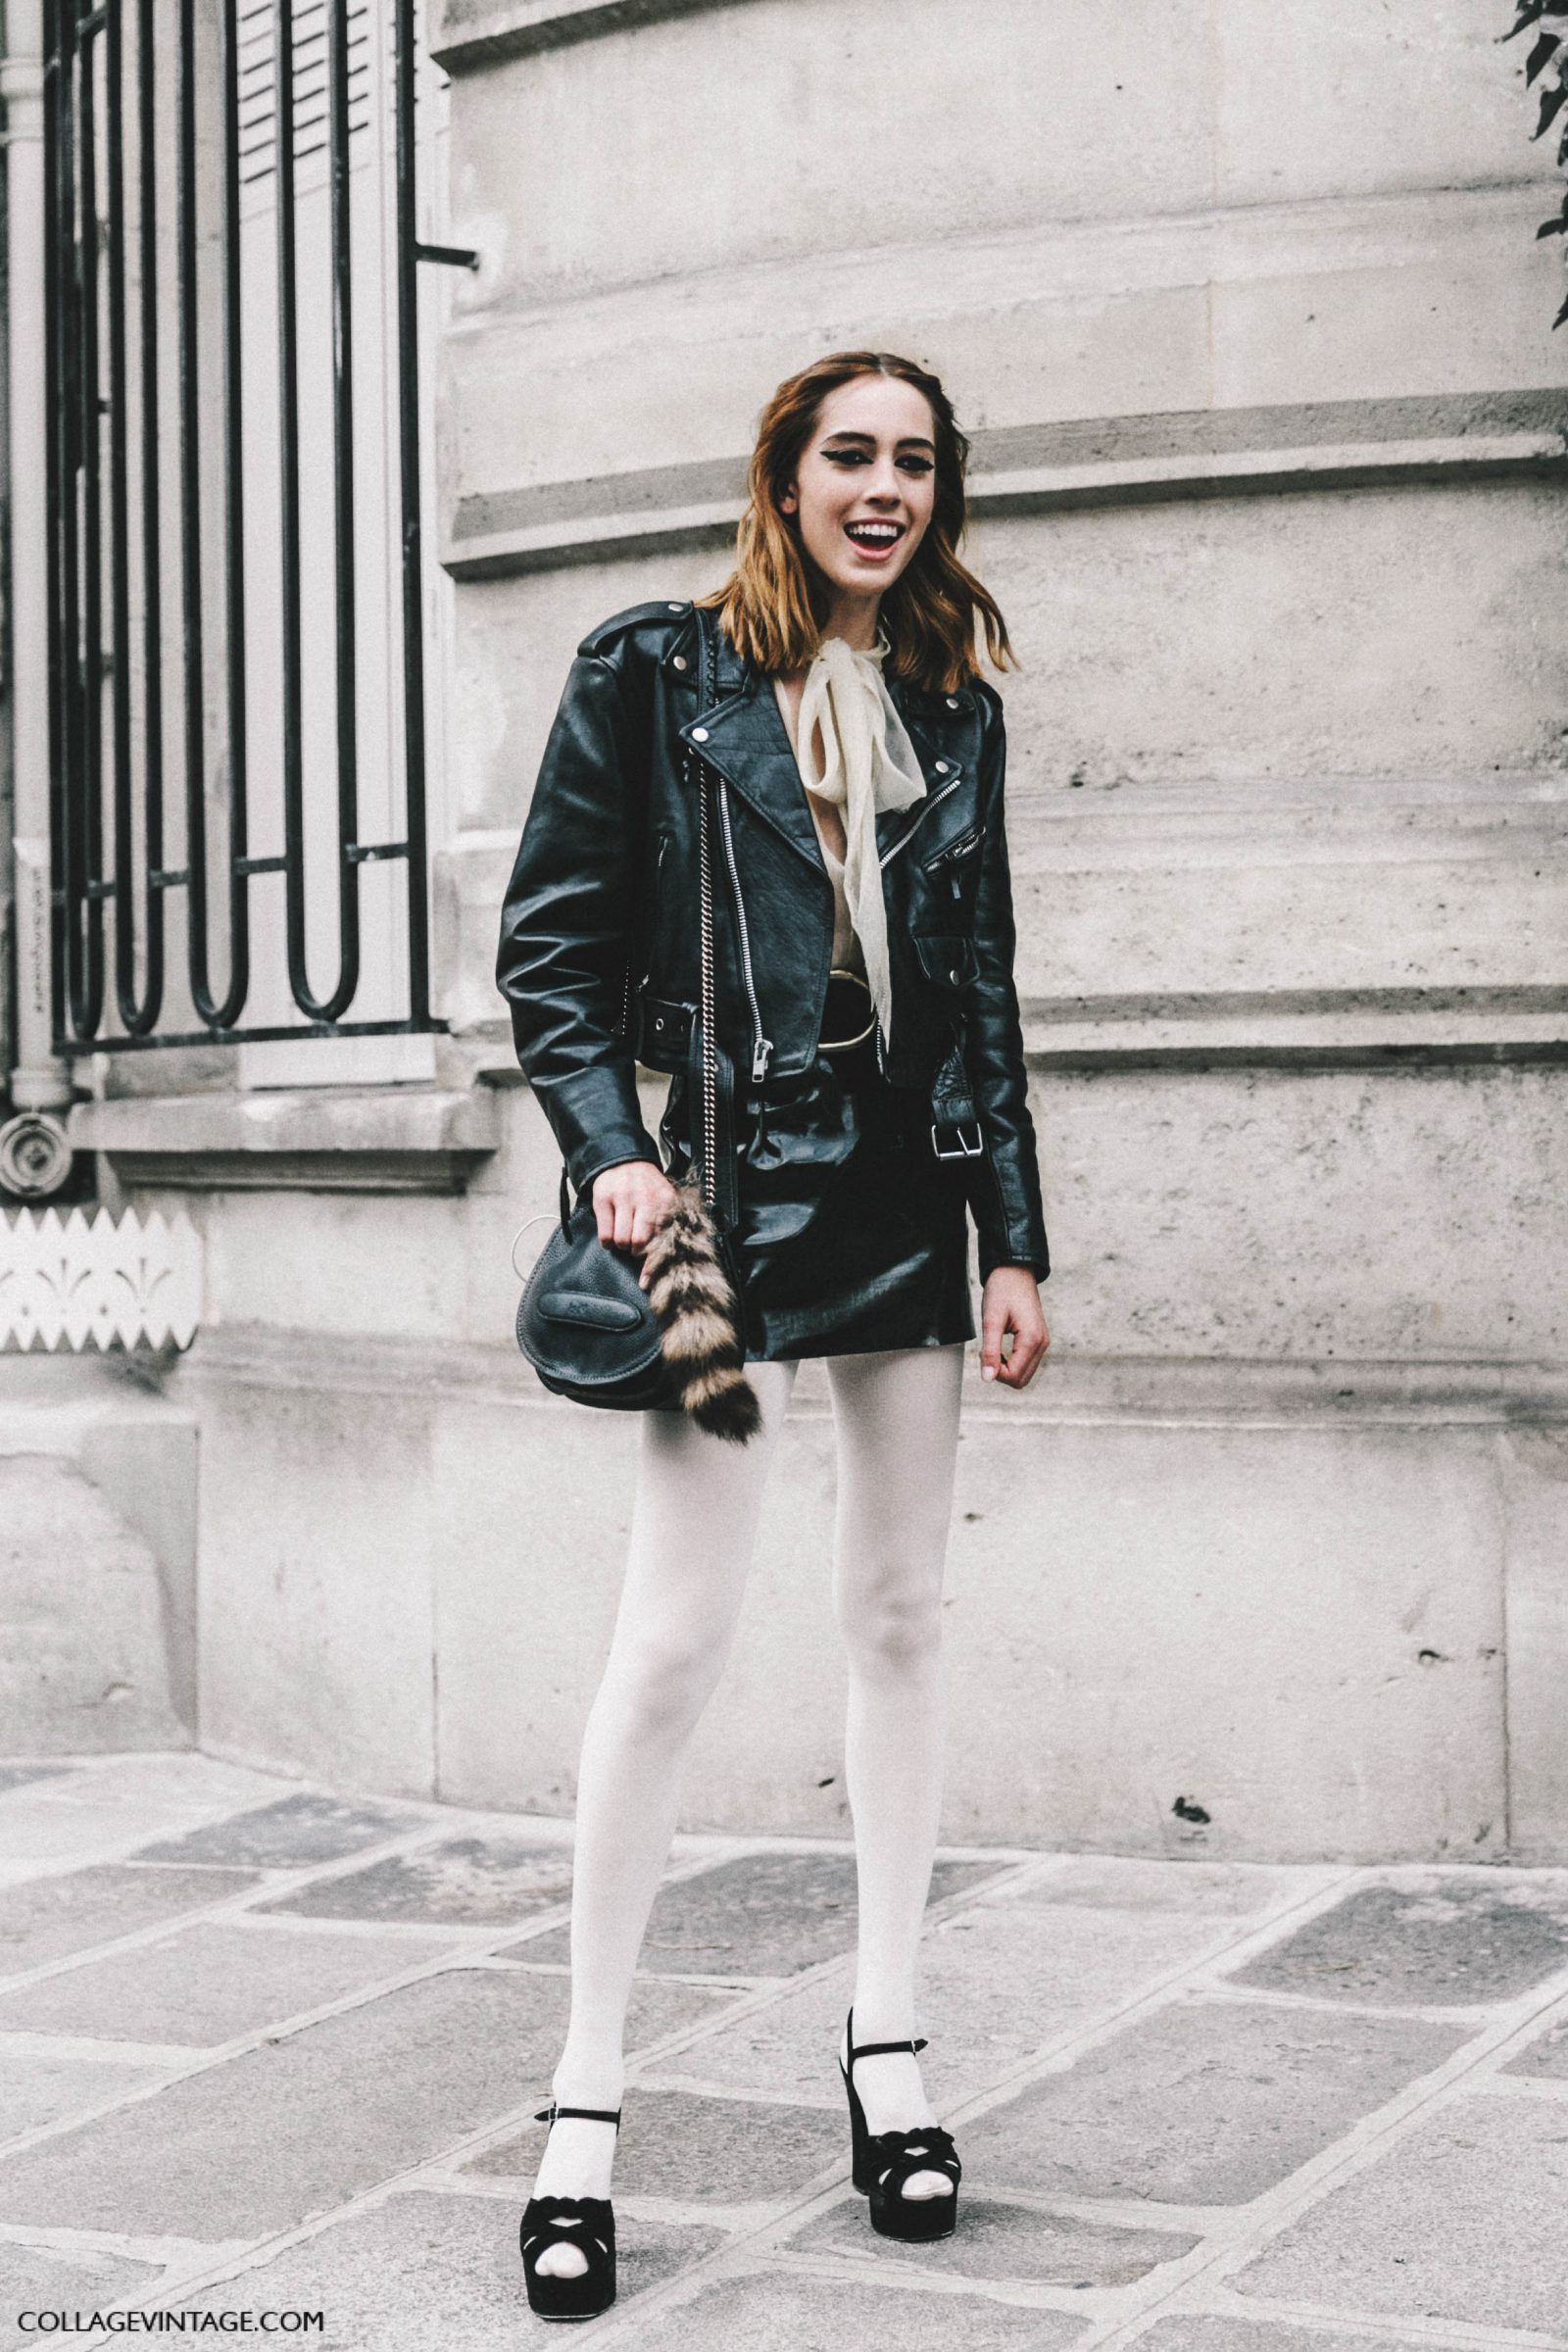 Paris_Couture_Fashion_Week-Collage_Vintage-Street_Style-120